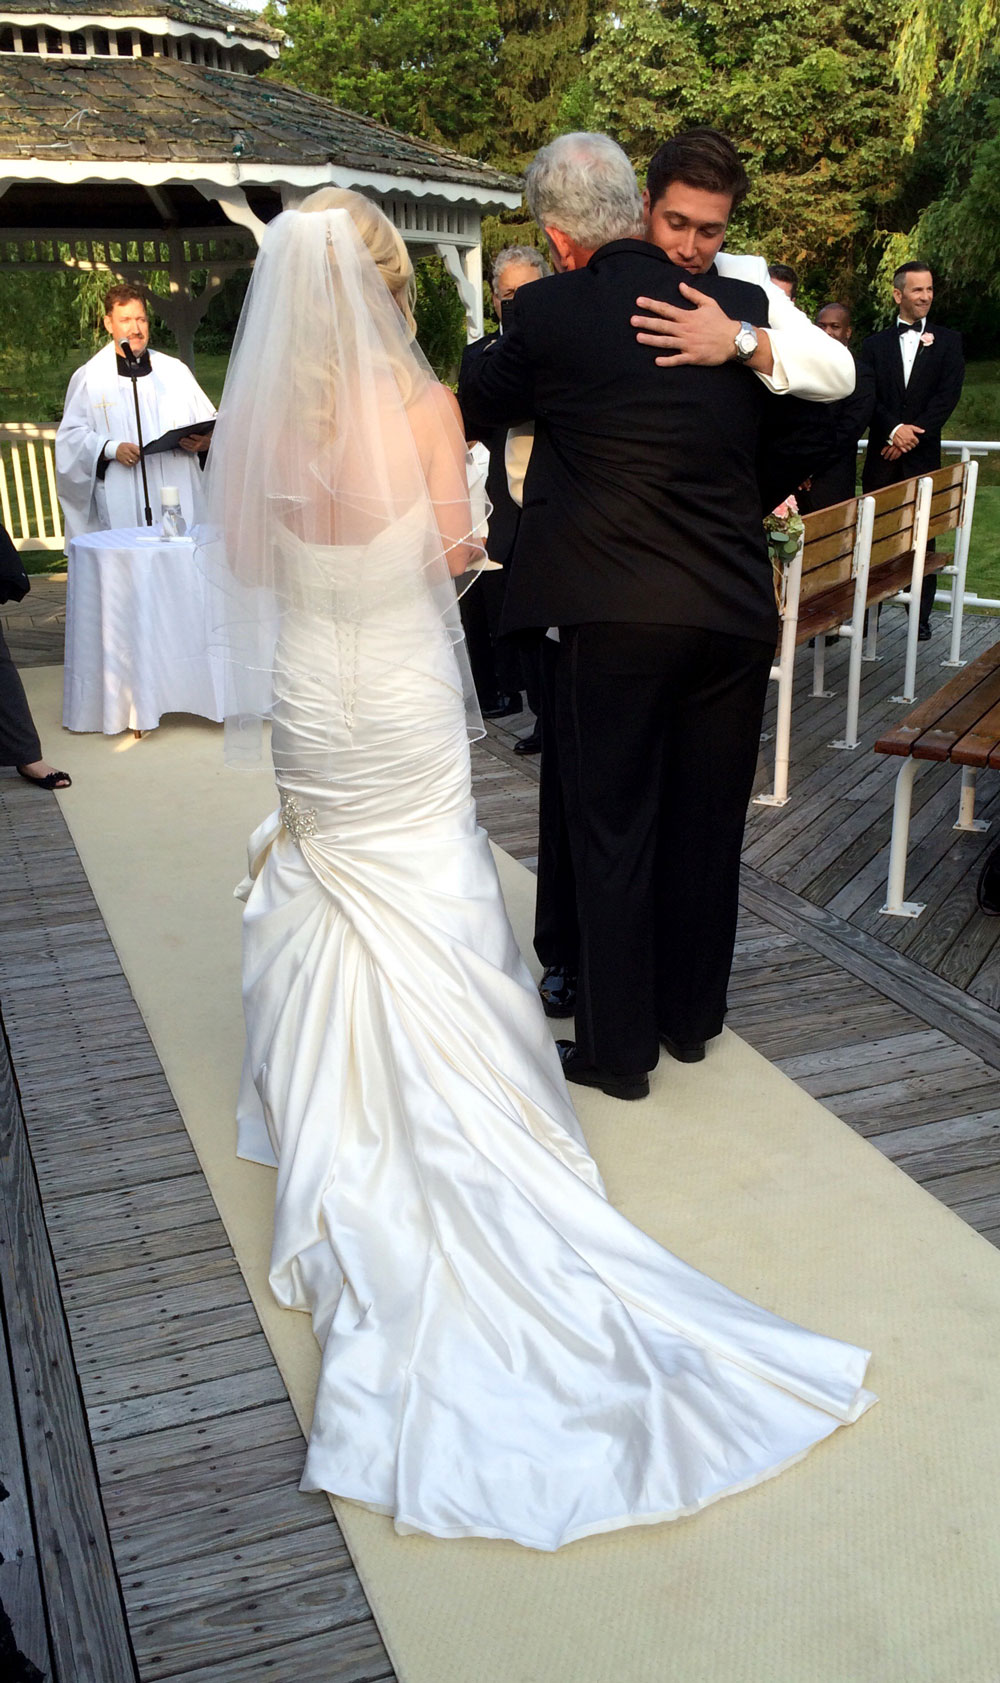 Lisa robertson in wedding dress - You Can Tell That There Is A Lot Of Love And Respect Between Bryan And His Future Inlaws As He Gives Leigh S Father A Hug Before Taking Her Hand